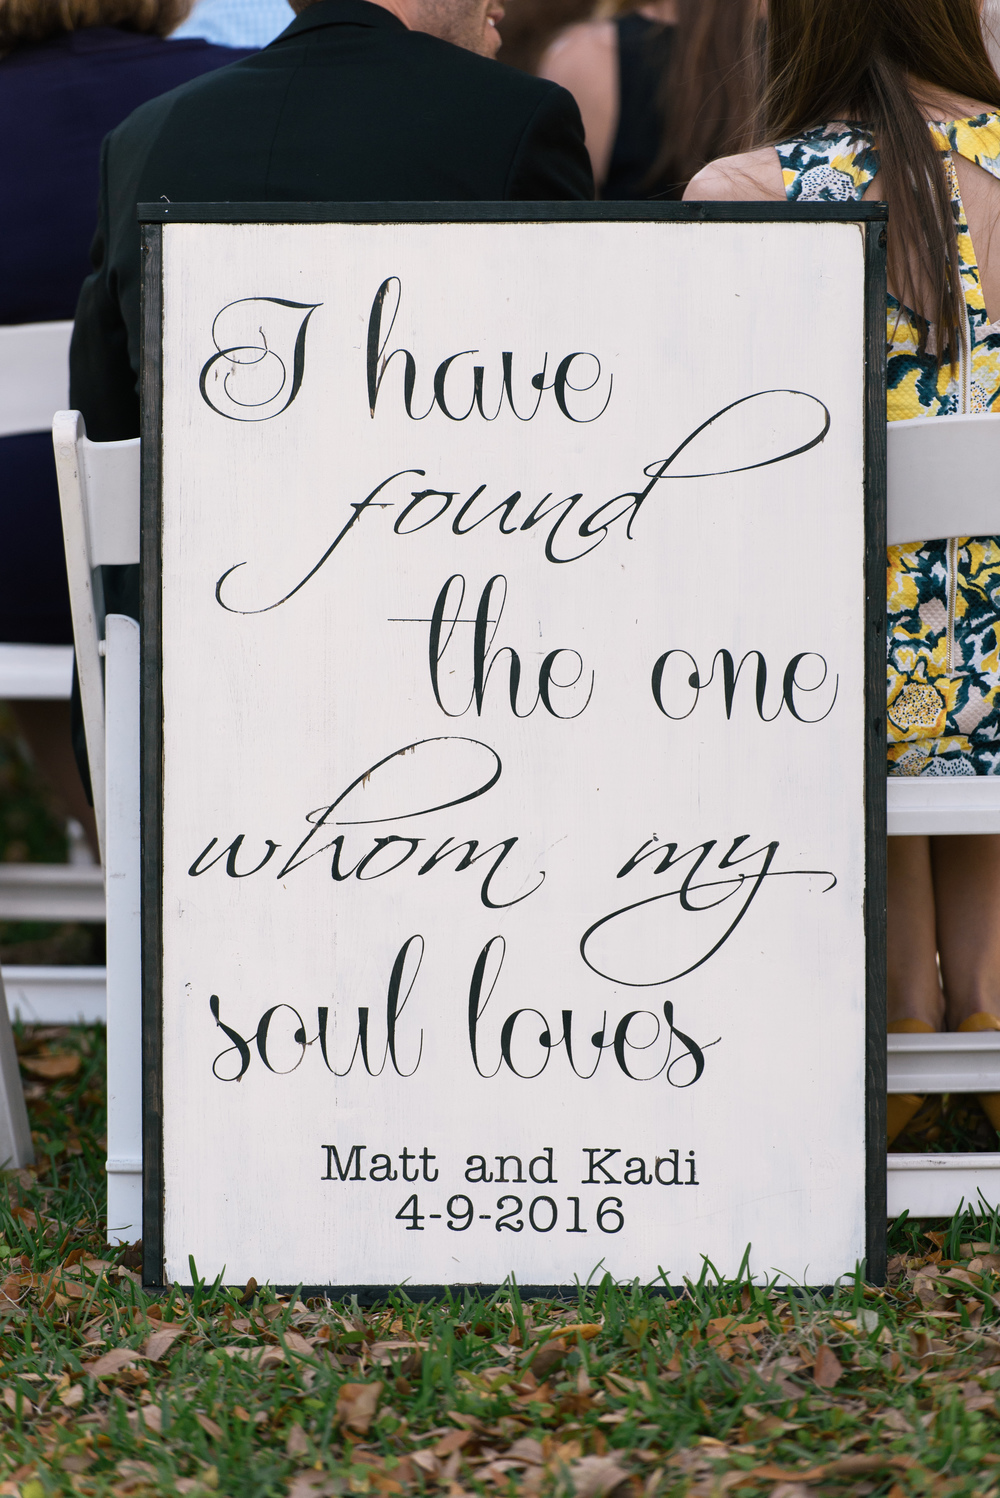 kadi-and-matt-carroll-april-9-2016-jekyl-island-wedding-m-newsom-photography- (167 of 484).jpg